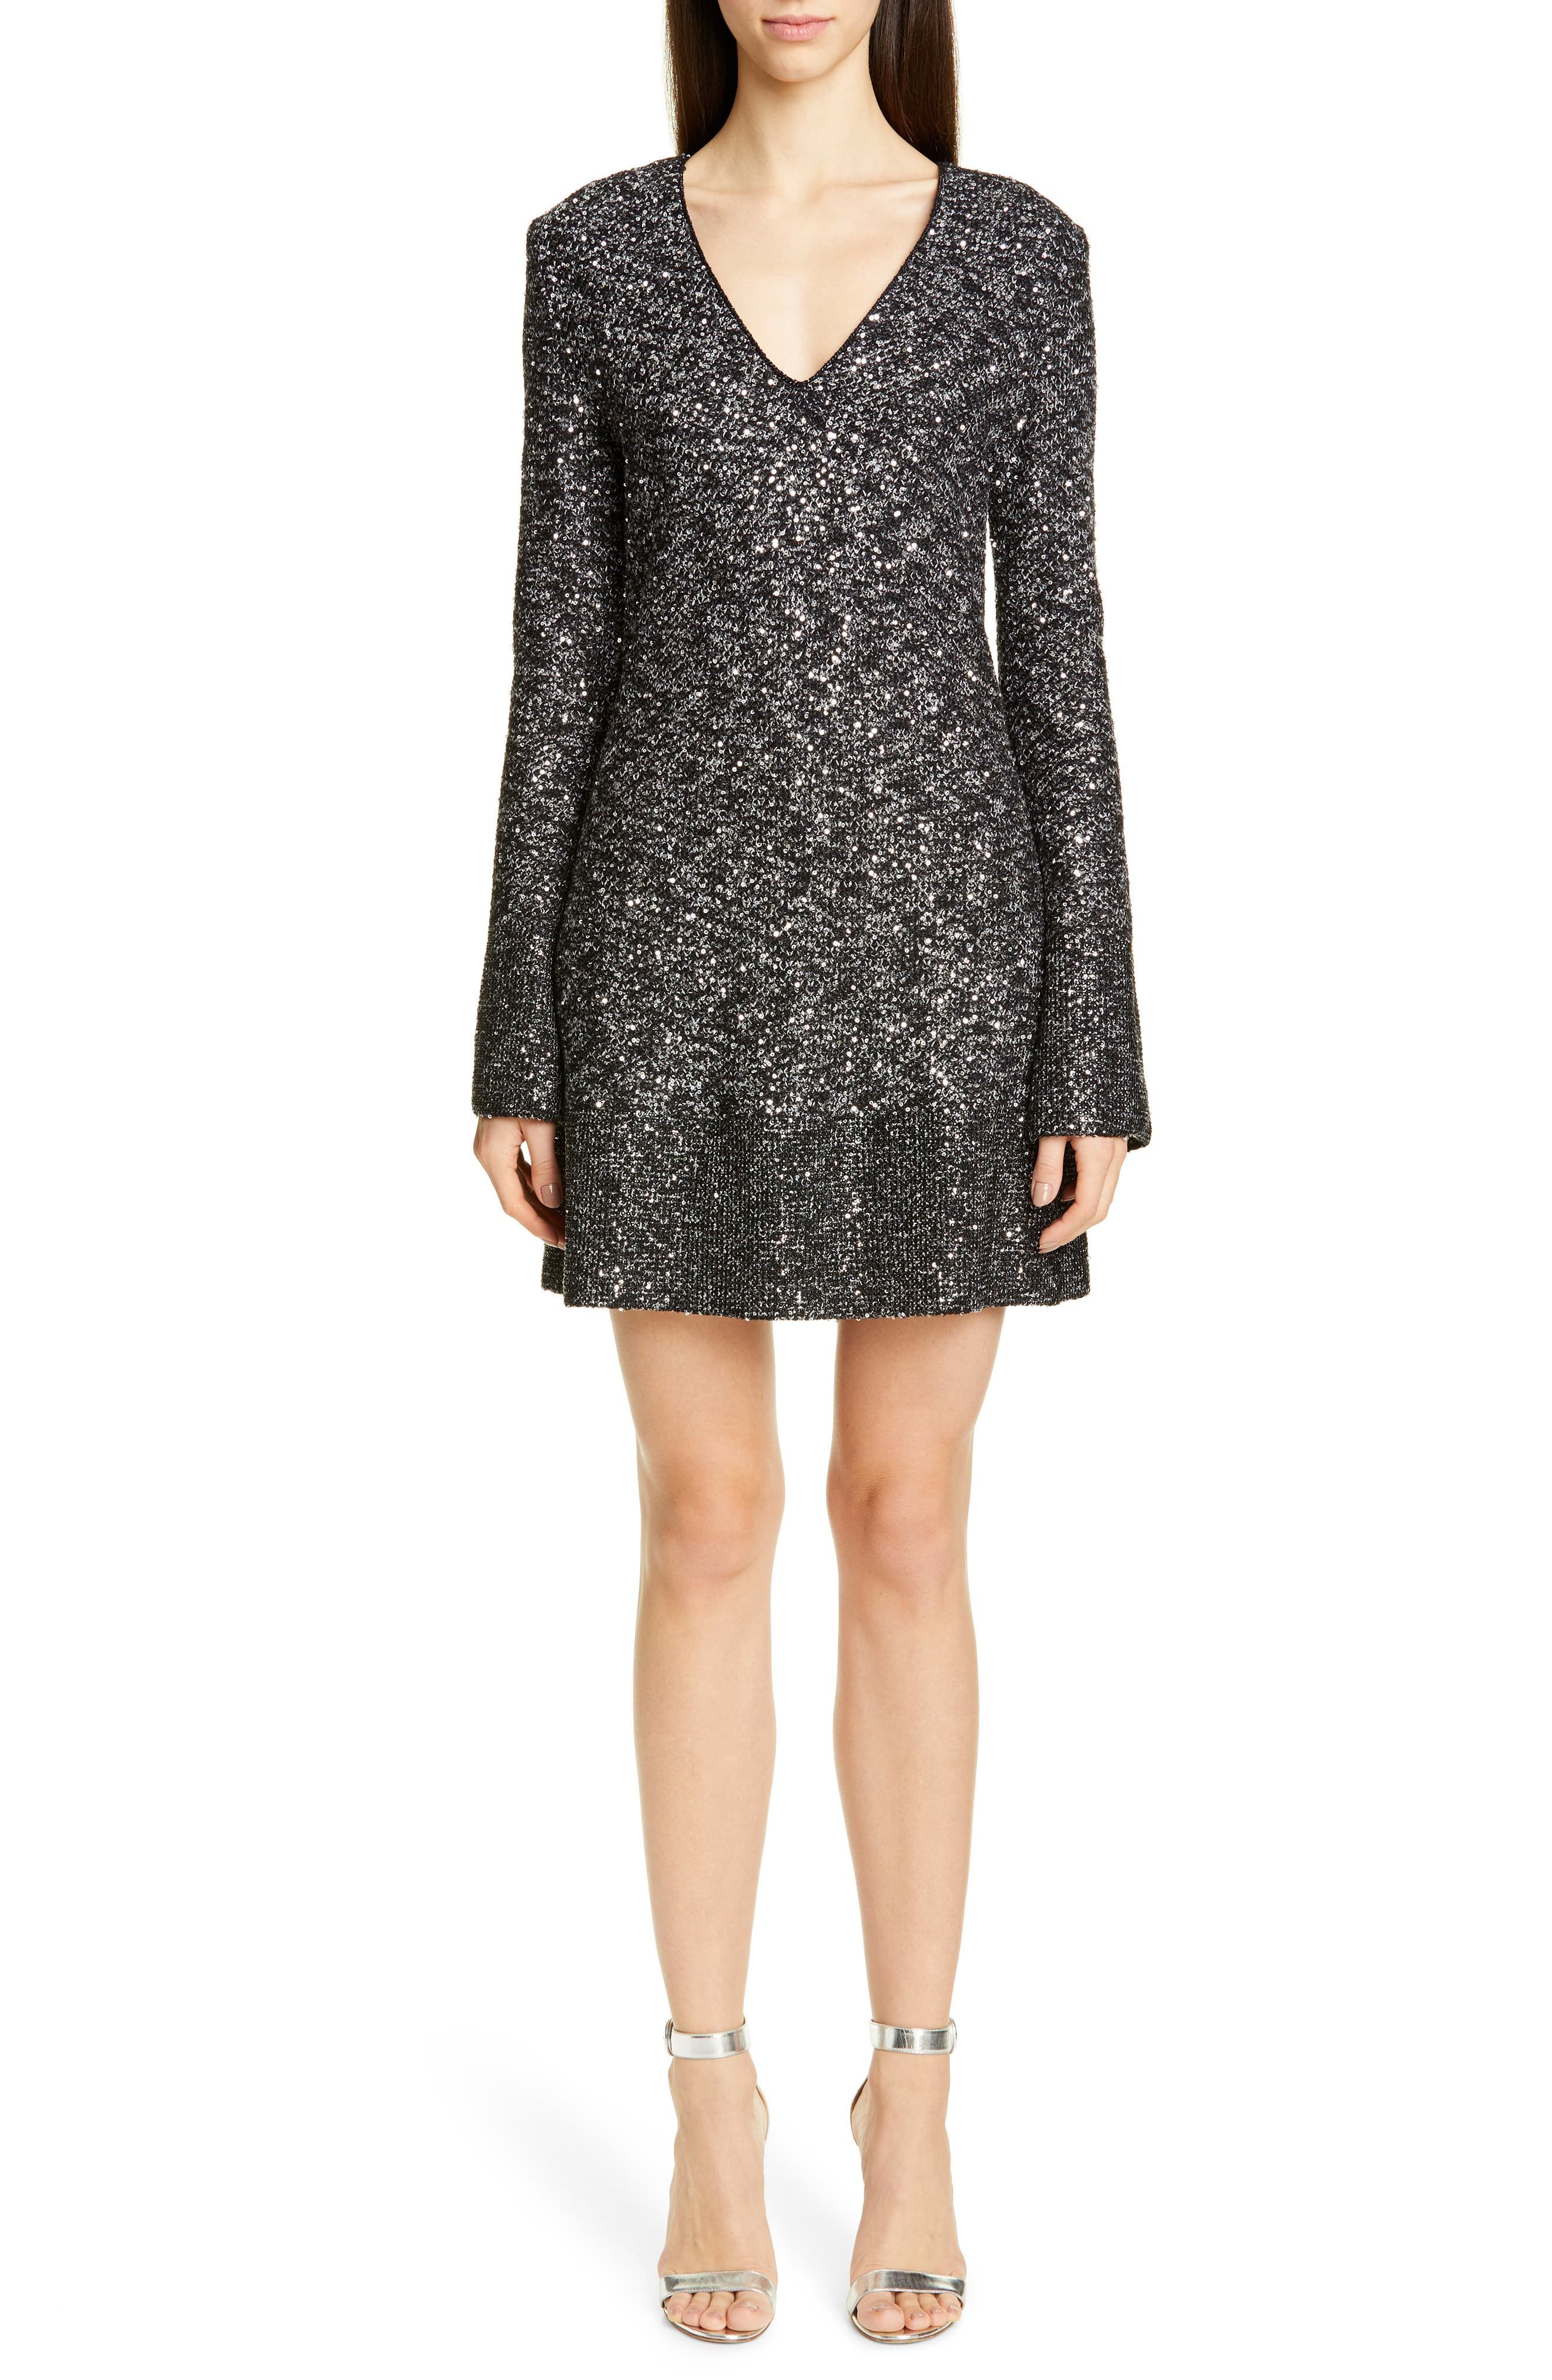 St. John Collection Bejeweled Long Sleeve Texture Knit Cocktail Dress, Black